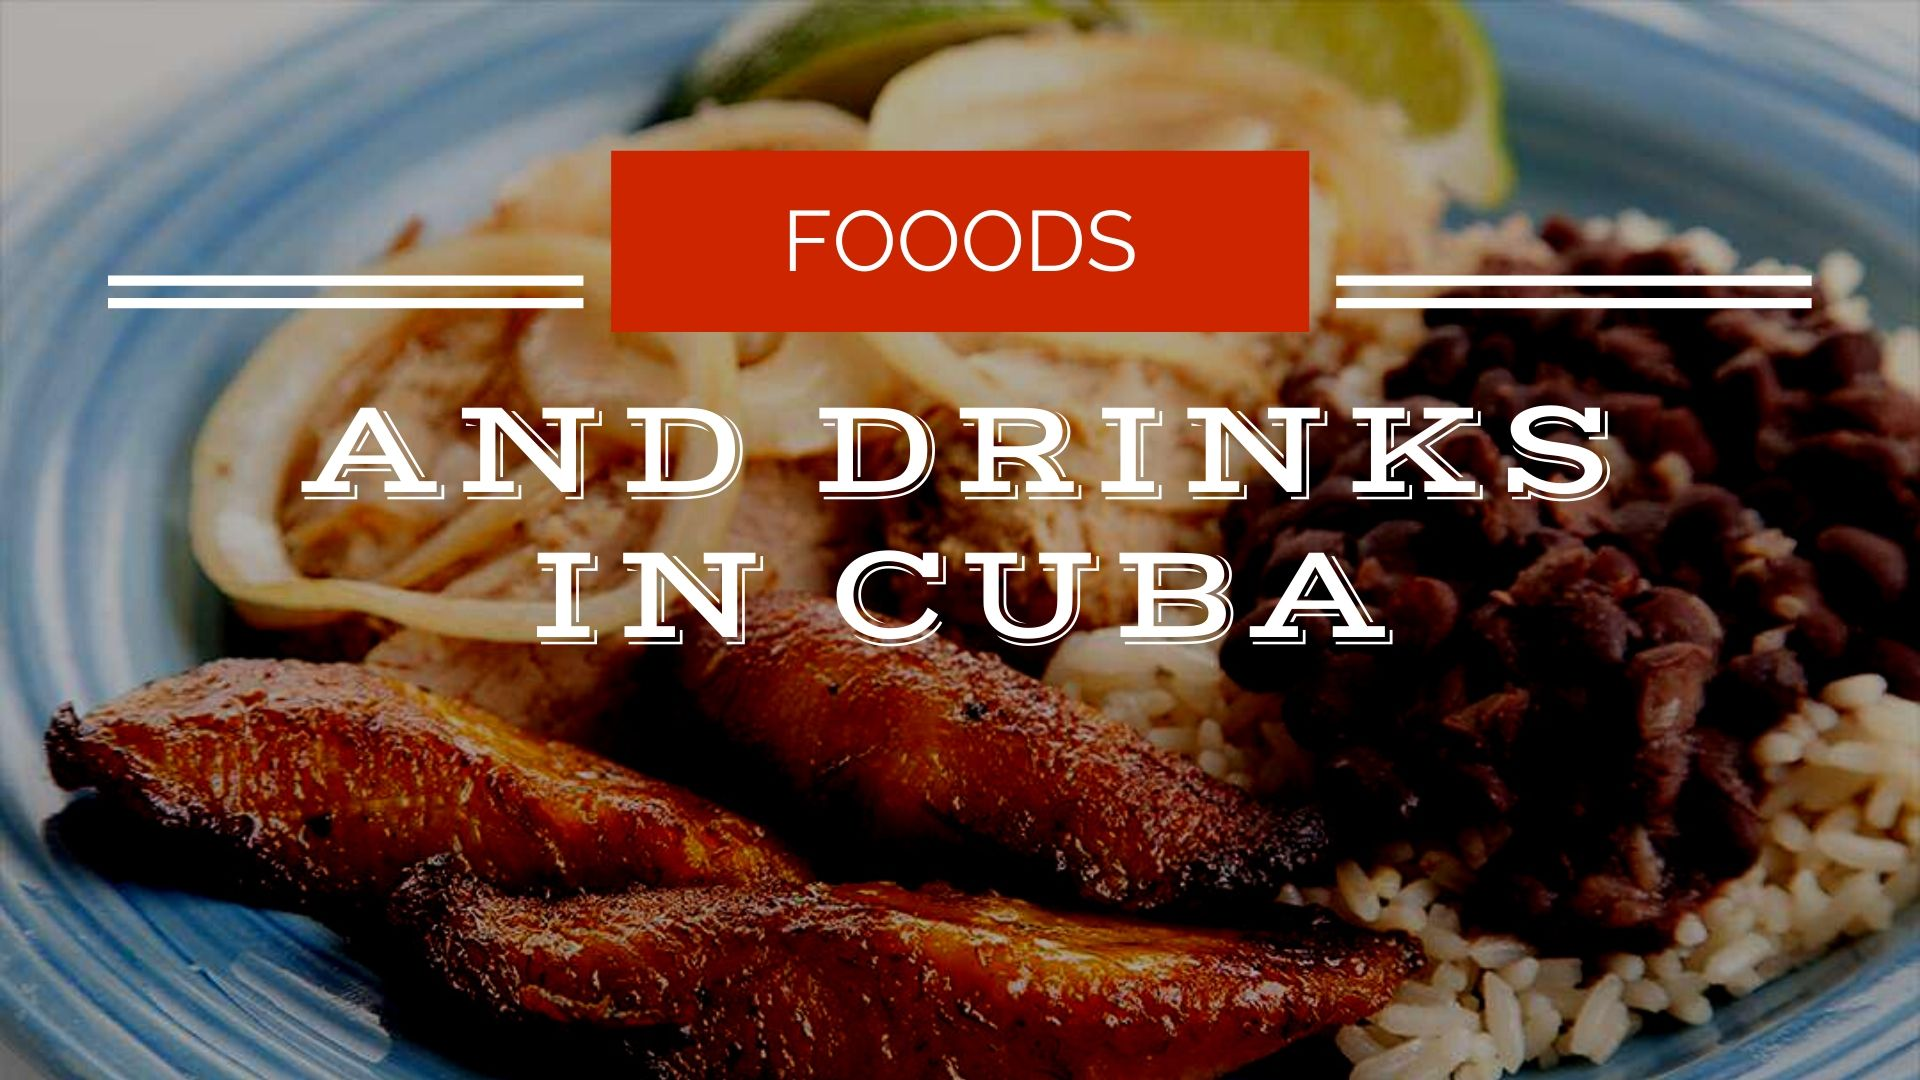 foods-and-drinks-in-cuba-cover